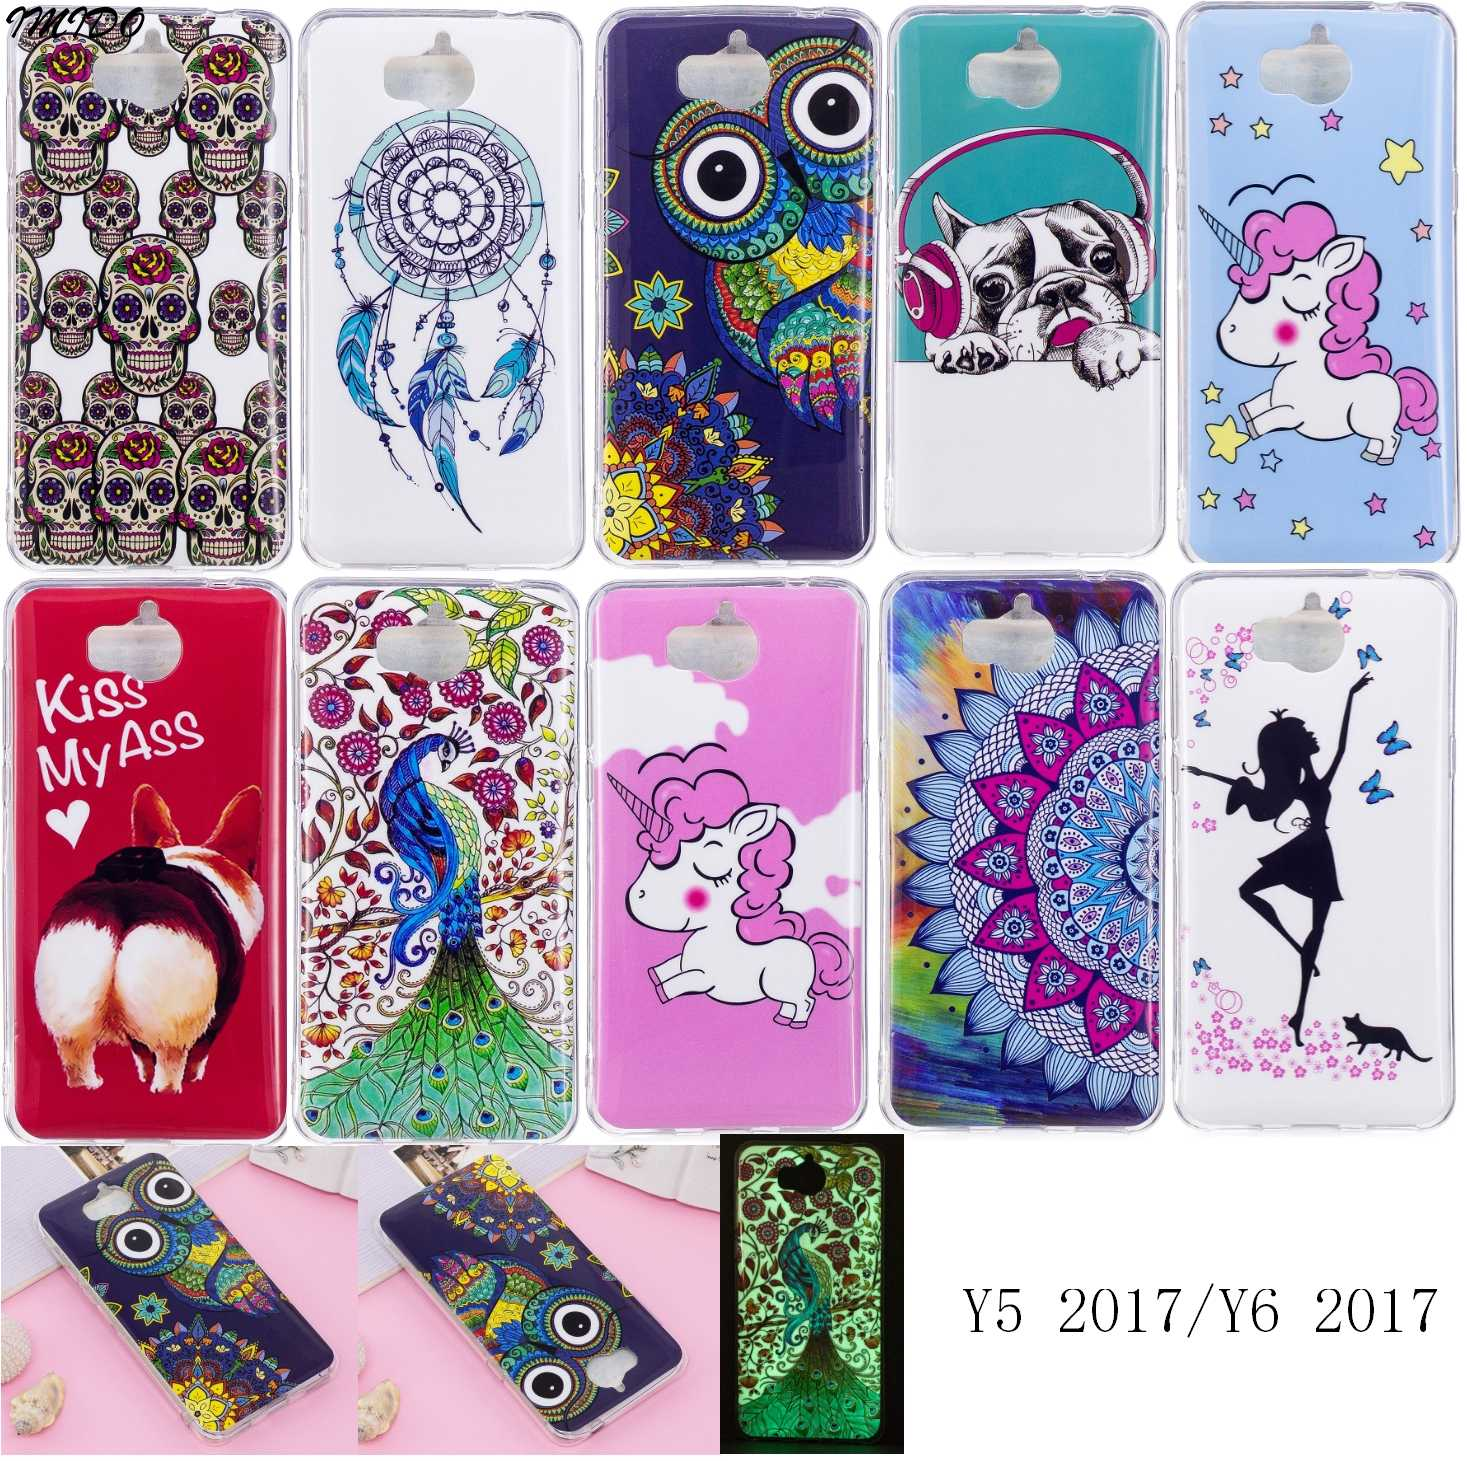 coque huawei y6 pro 2017 styler